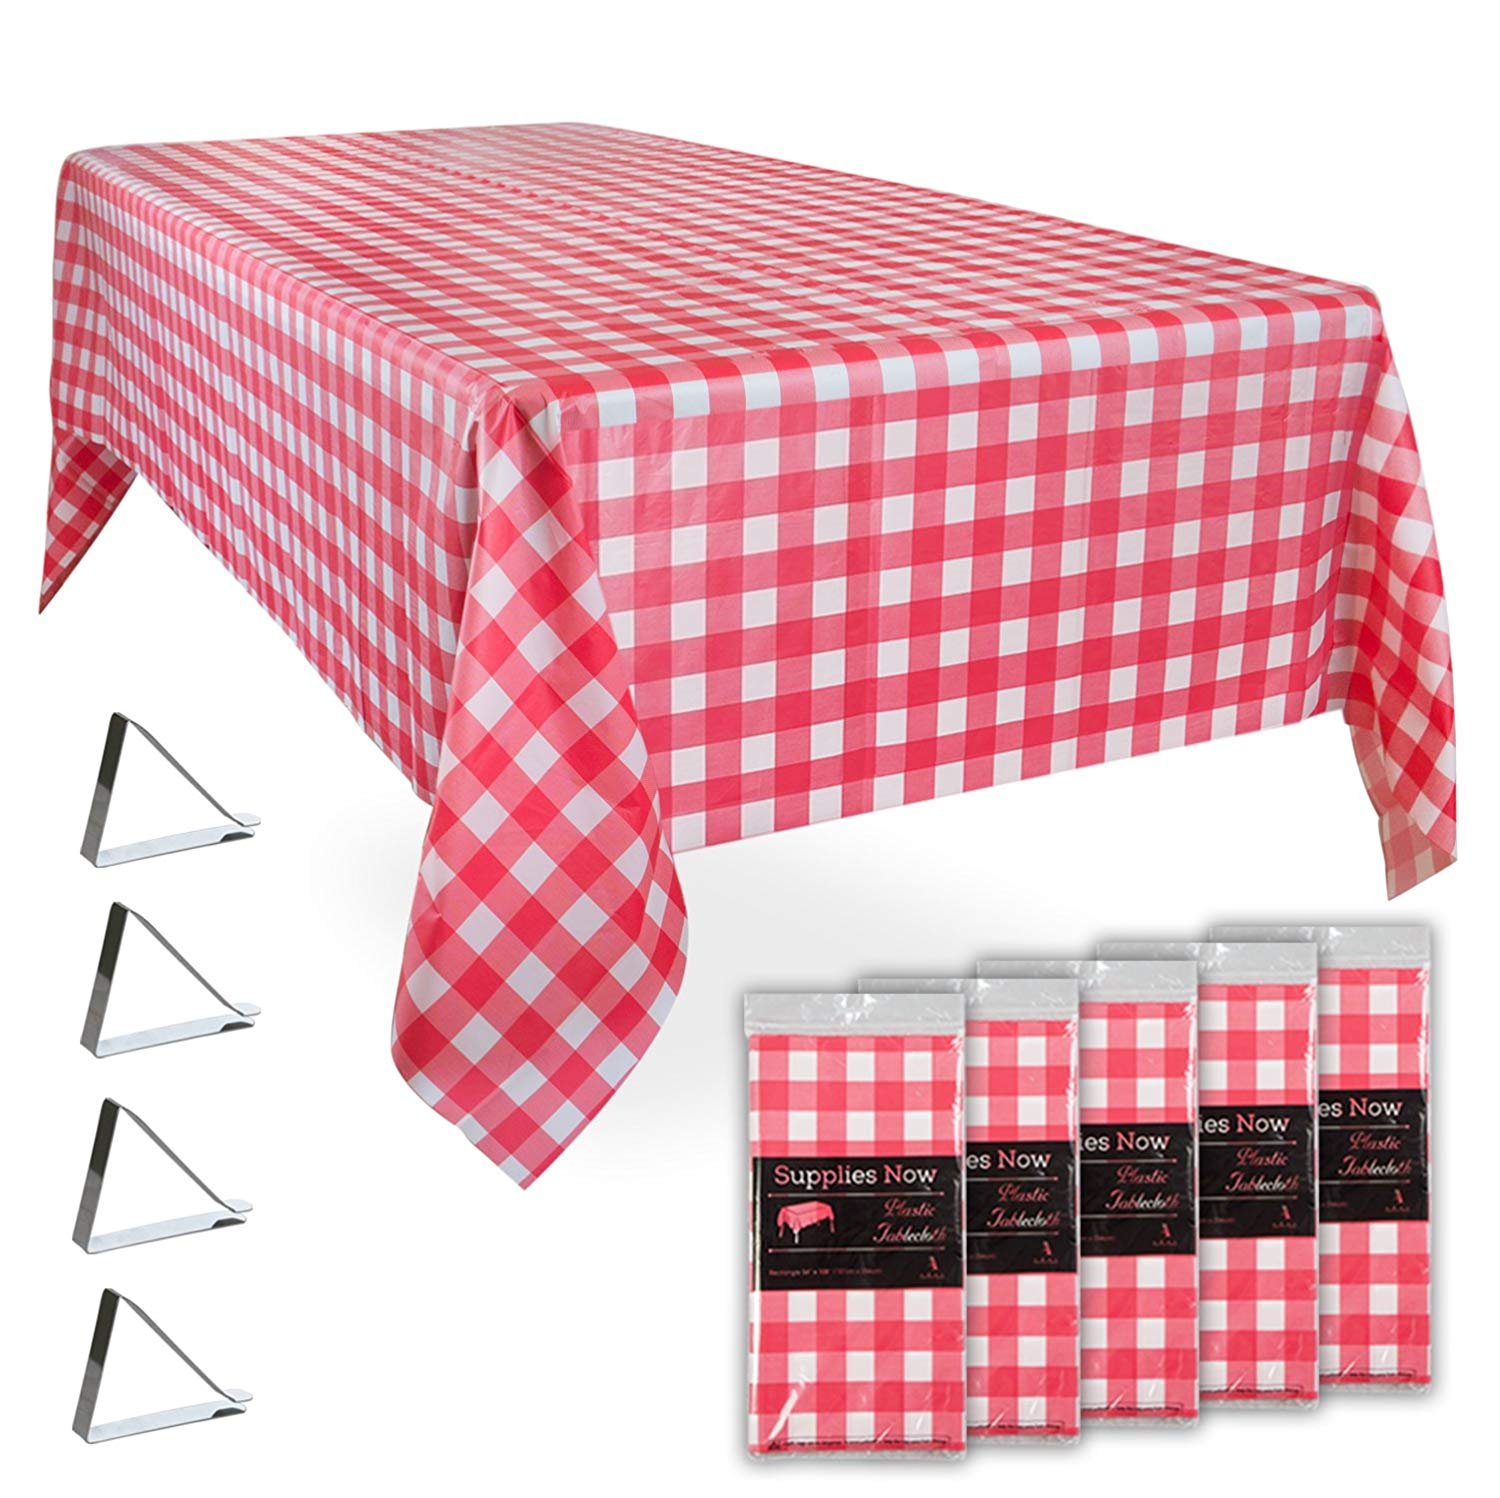 Cheap Fitted Plastic Tablecloths Find Fitted Plastic Tablecloths